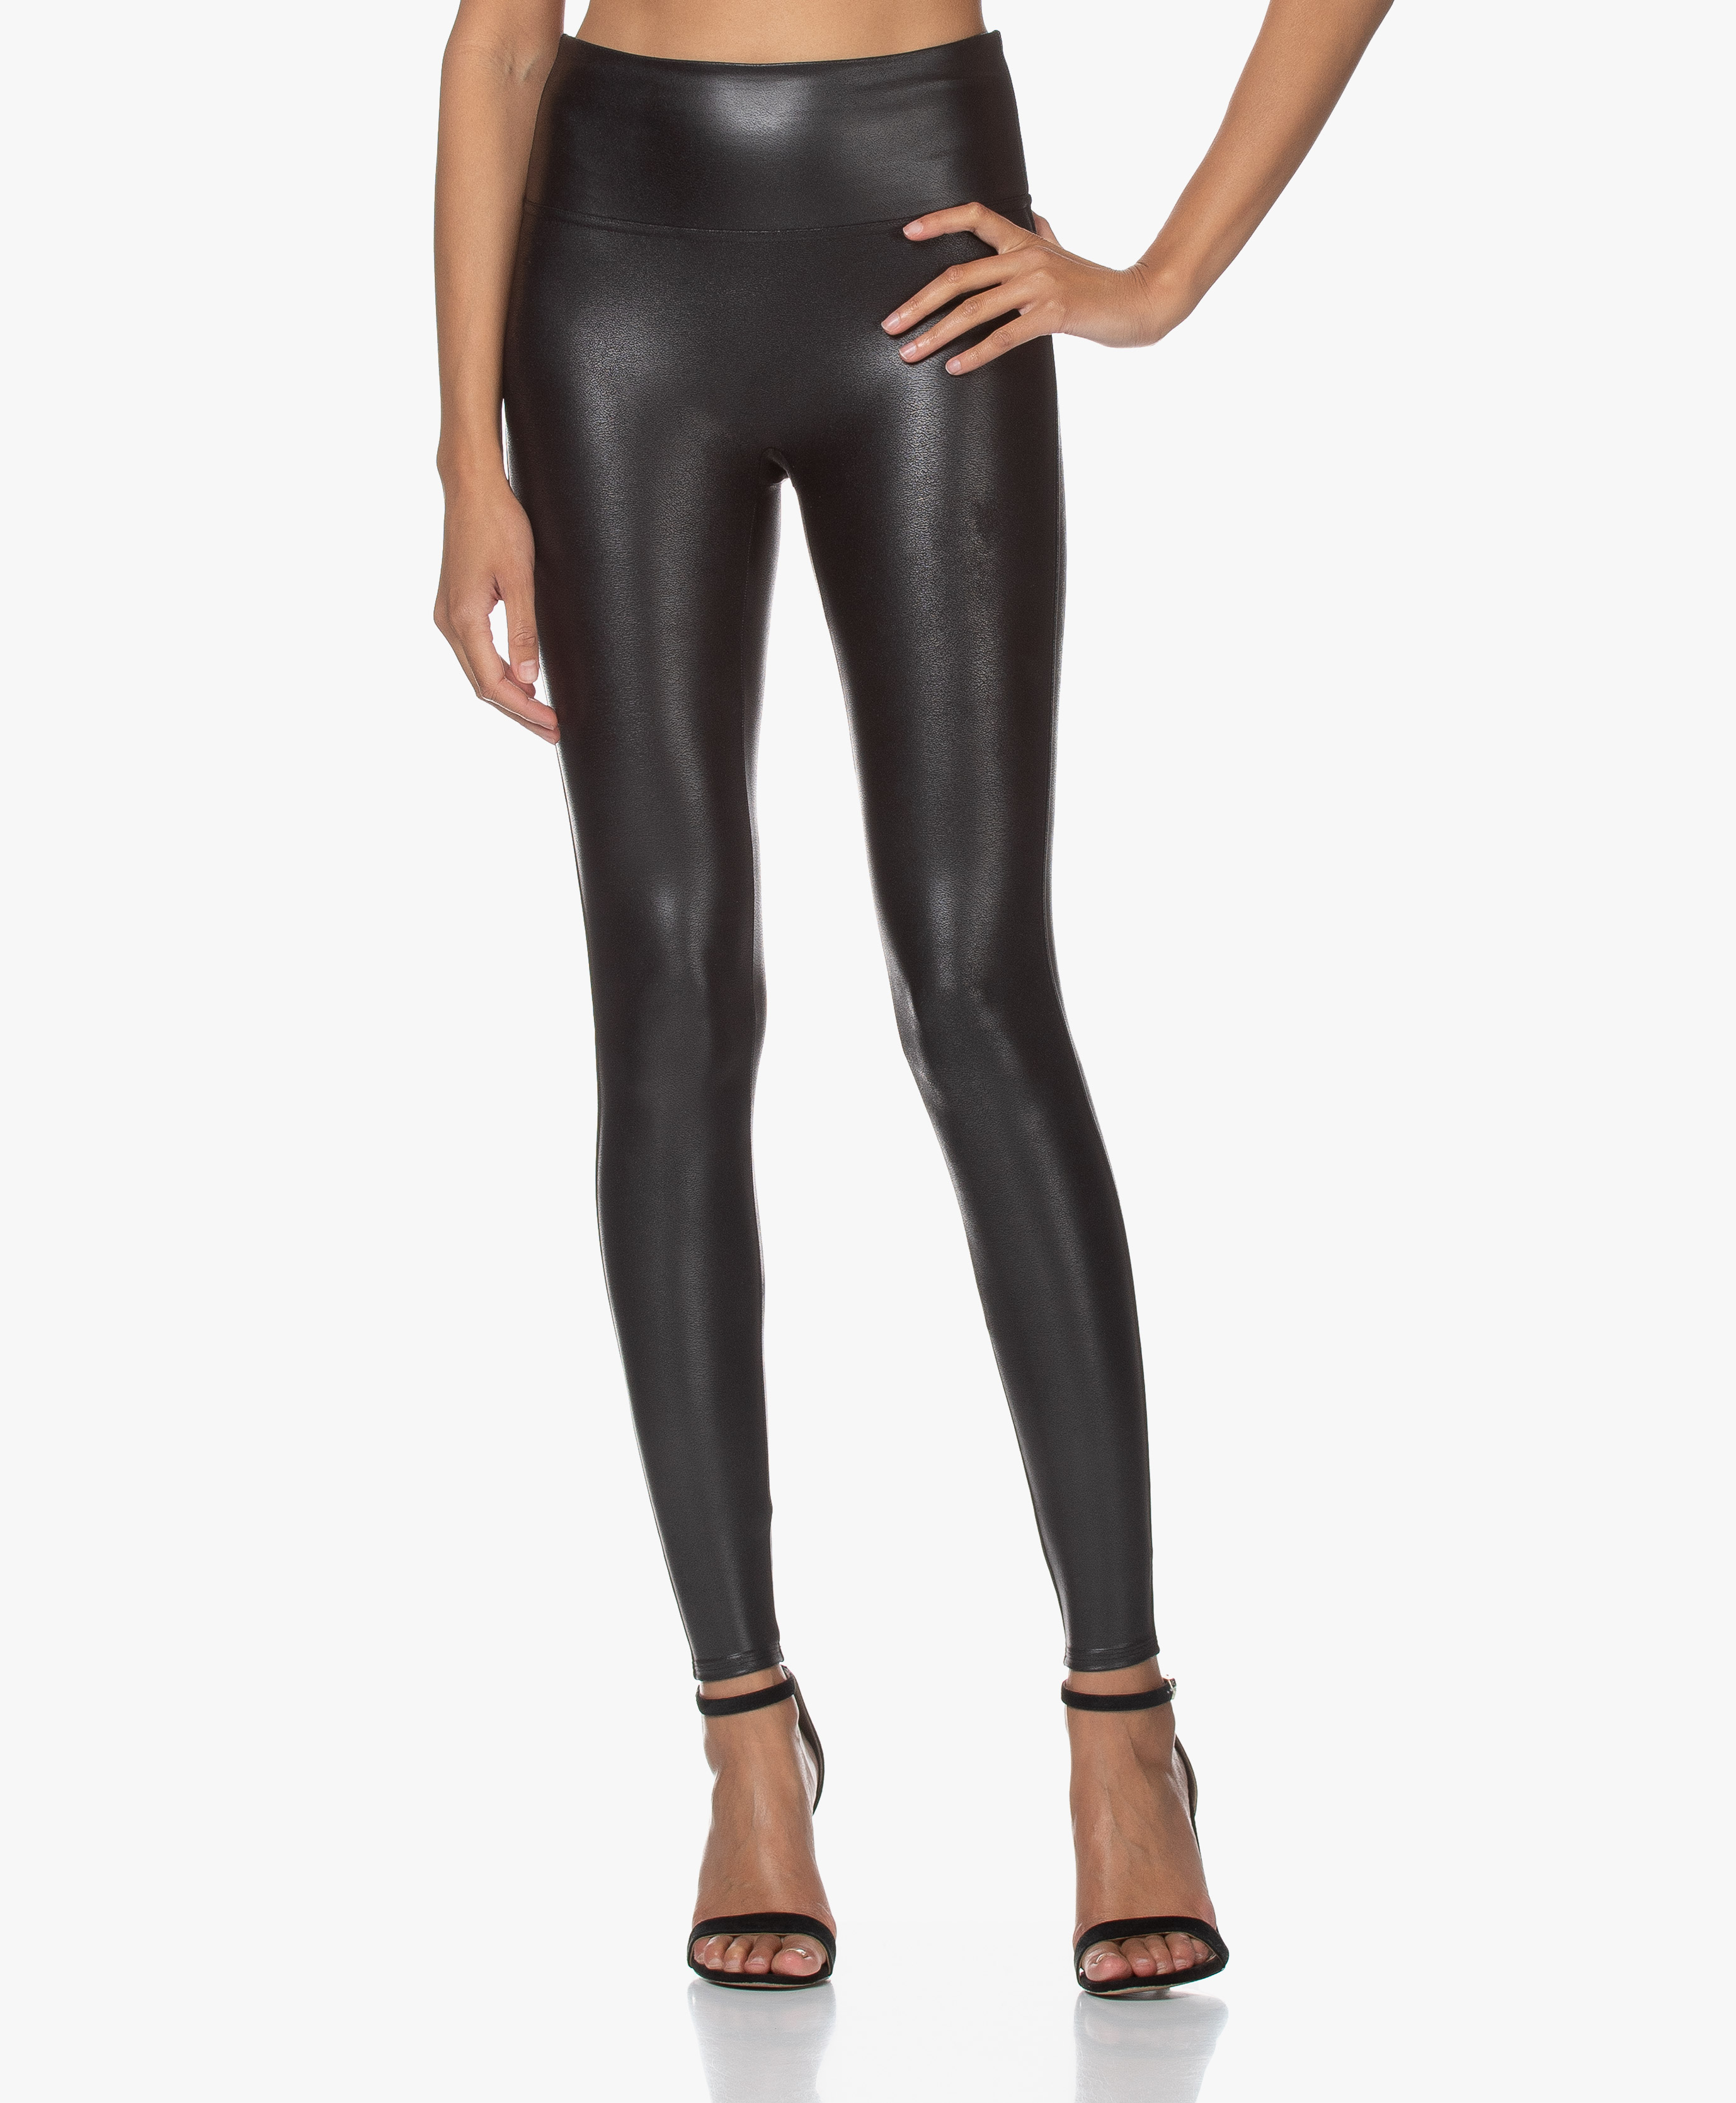 SPANX® Ready to Wow Faux Leather Leggings   Black   spx 20 20